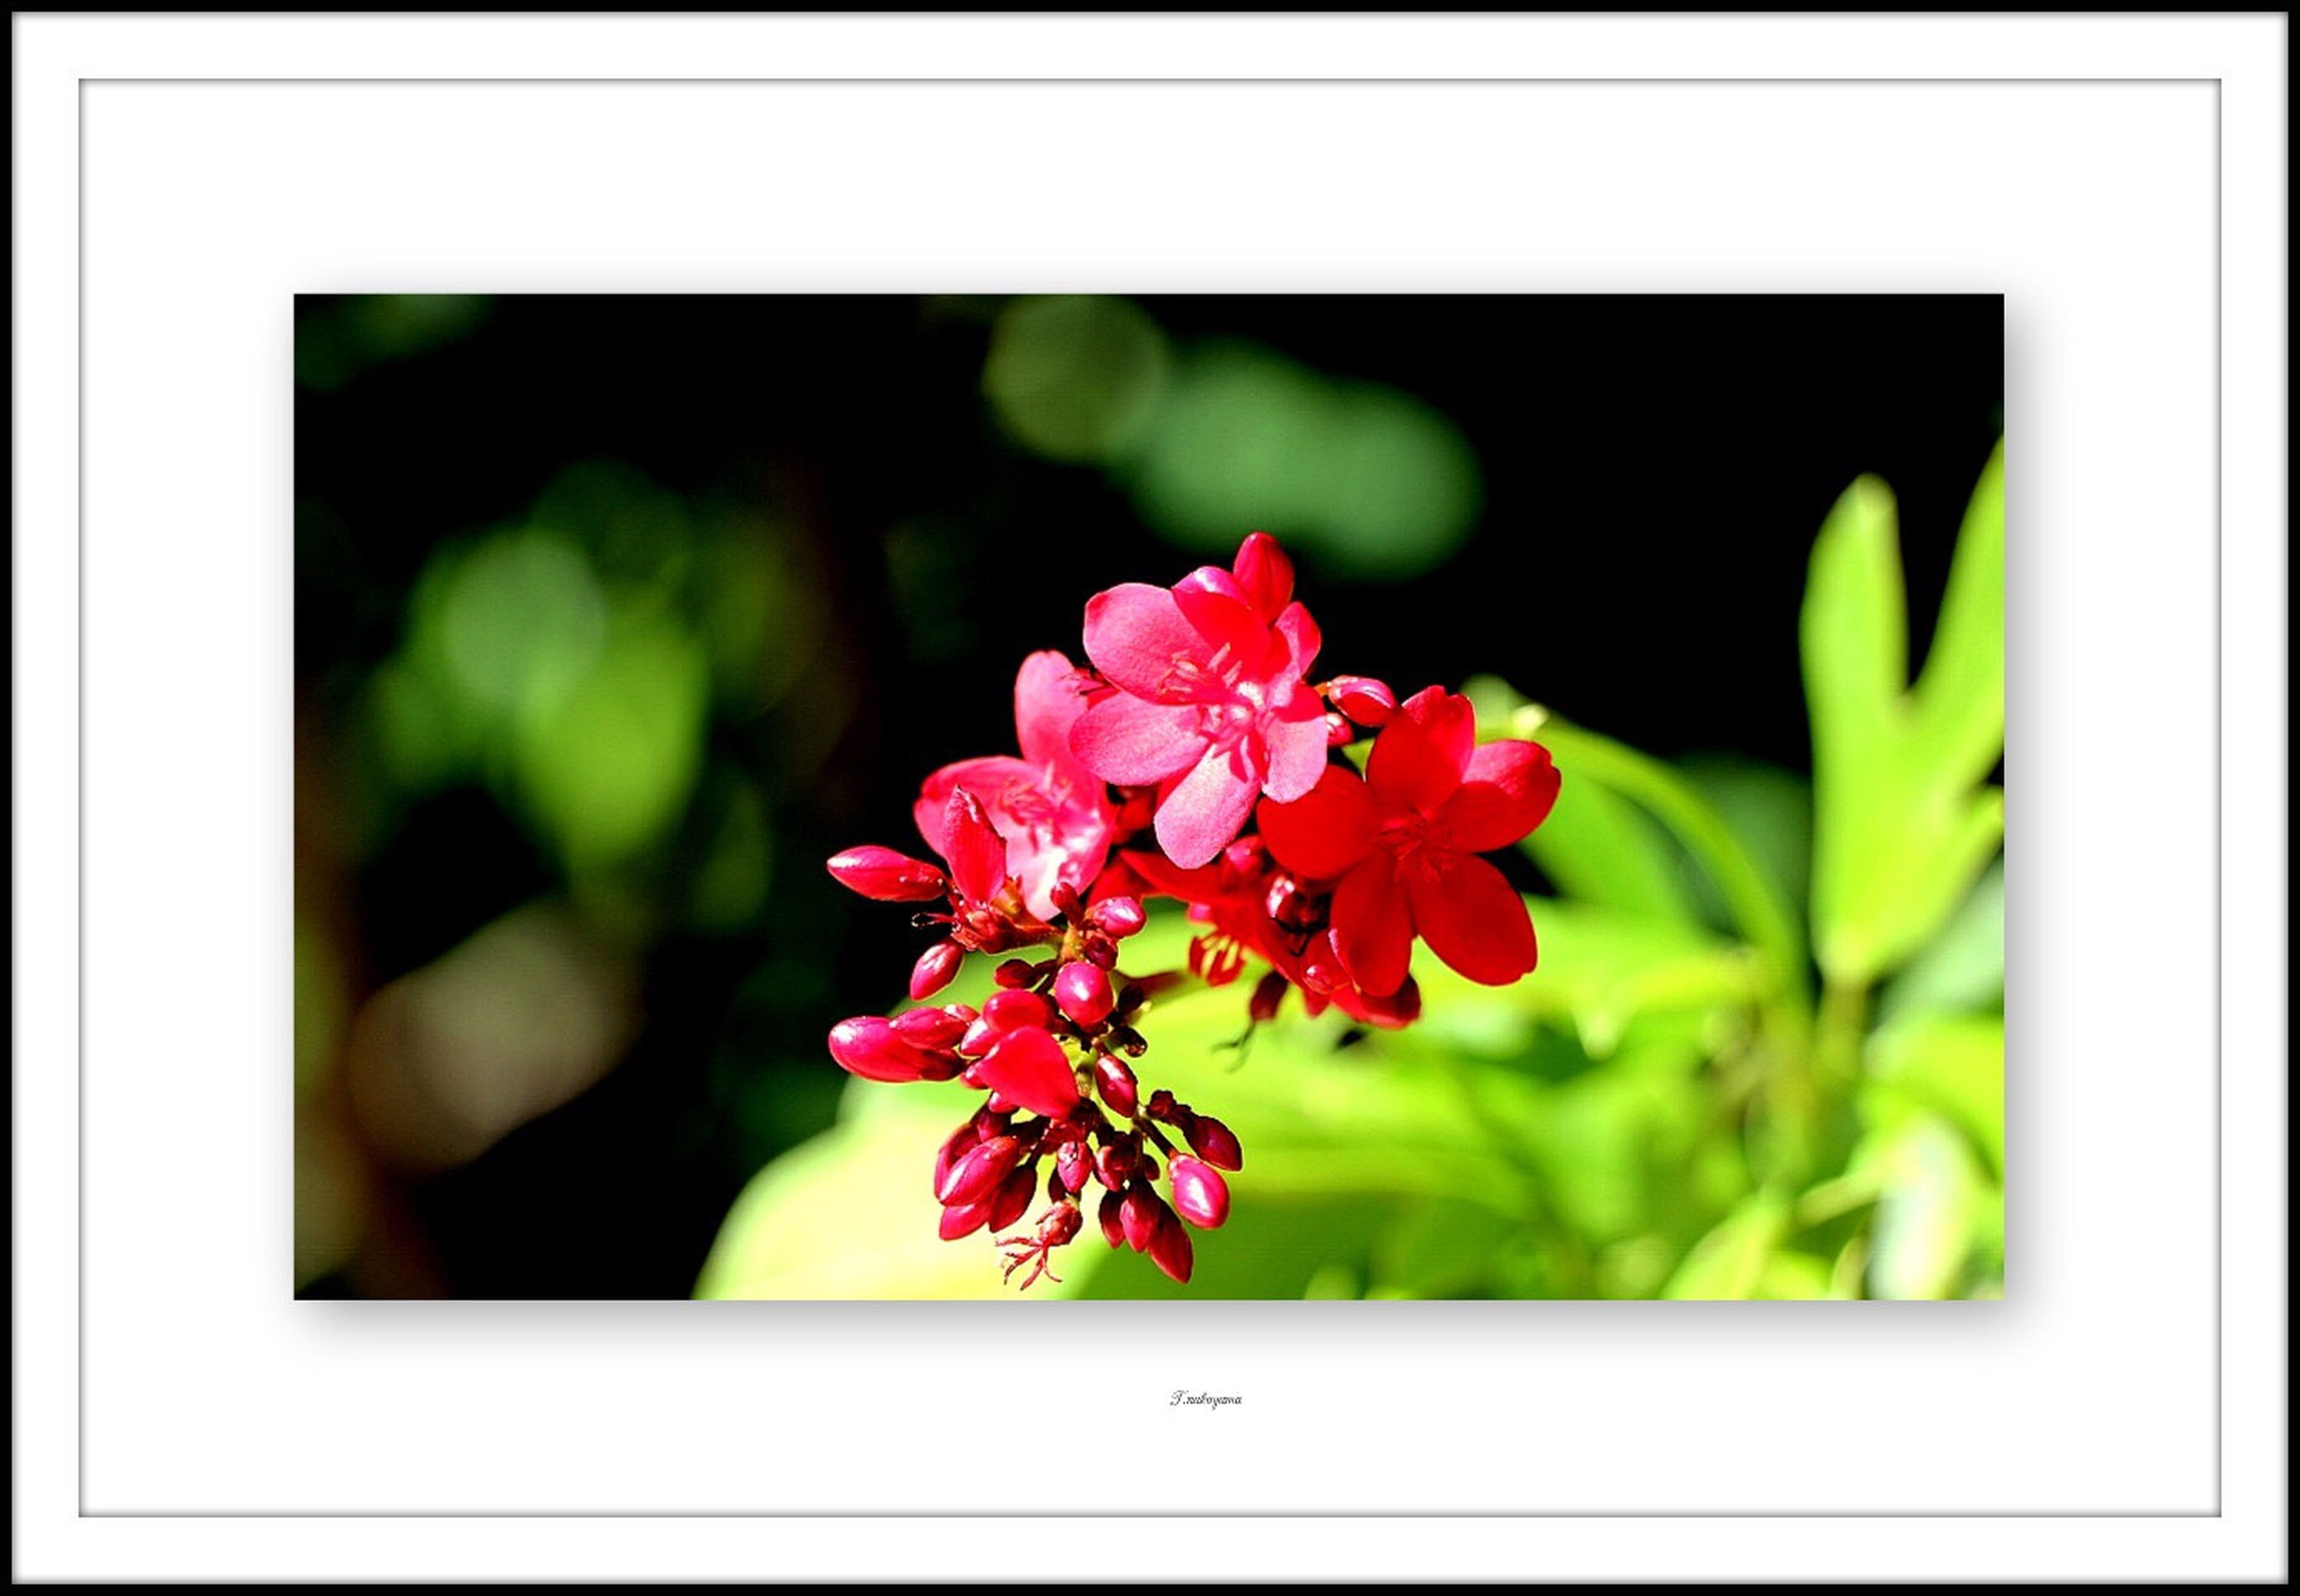 flower, freshness, transfer print, fragility, growth, petal, close-up, beauty in nature, red, focus on foreground, auto post production filter, flower head, nature, plant, blossom, blooming, pink color, in bloom, stem, leaf